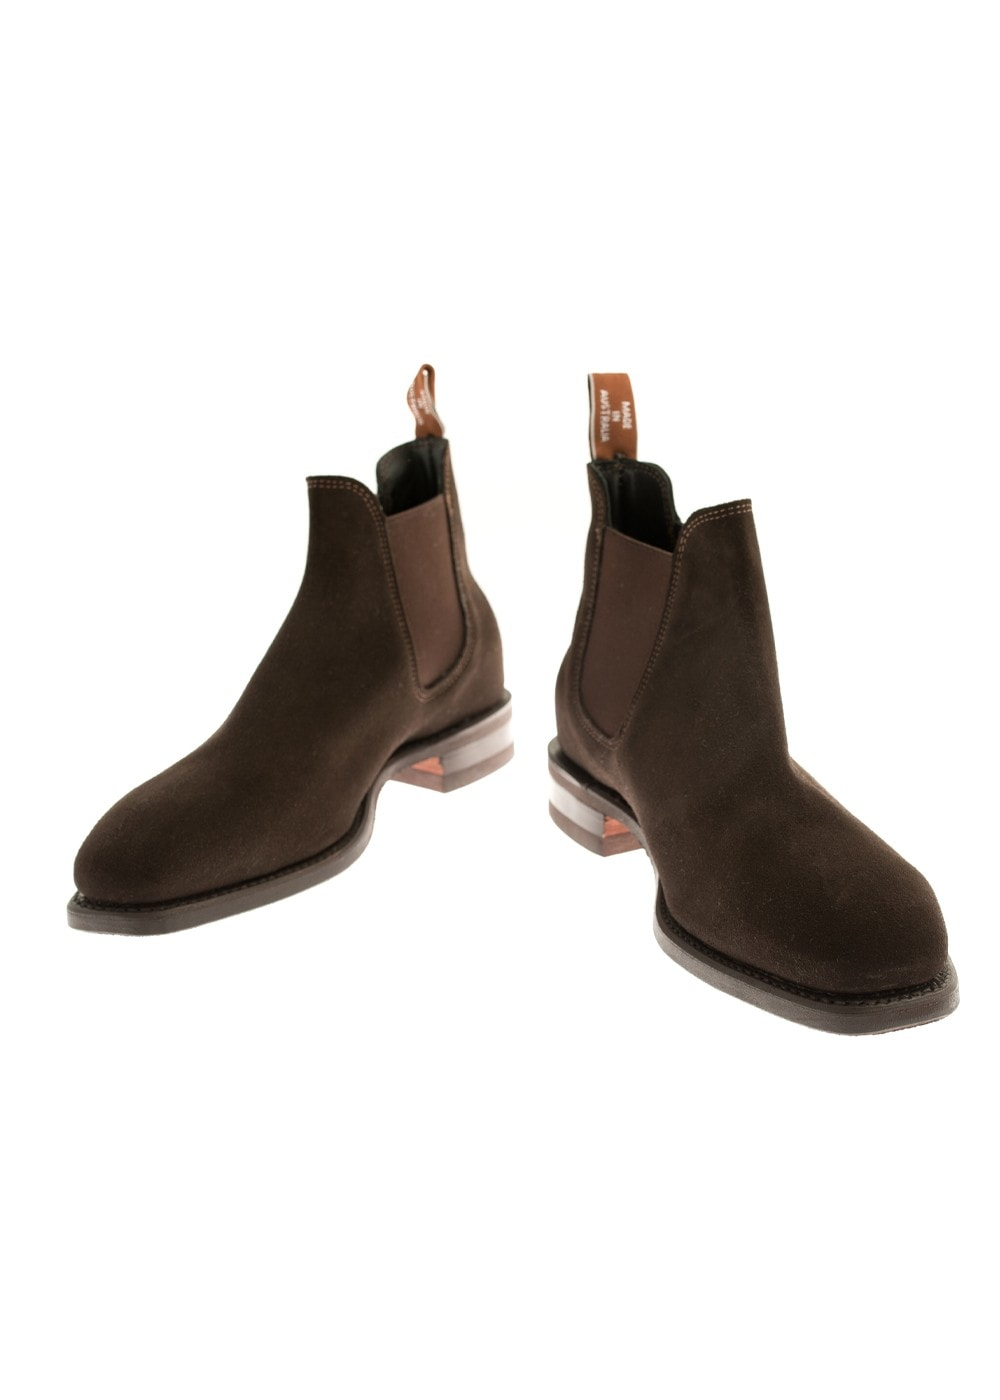 RM Williams Sydney Suede Boots - Mens